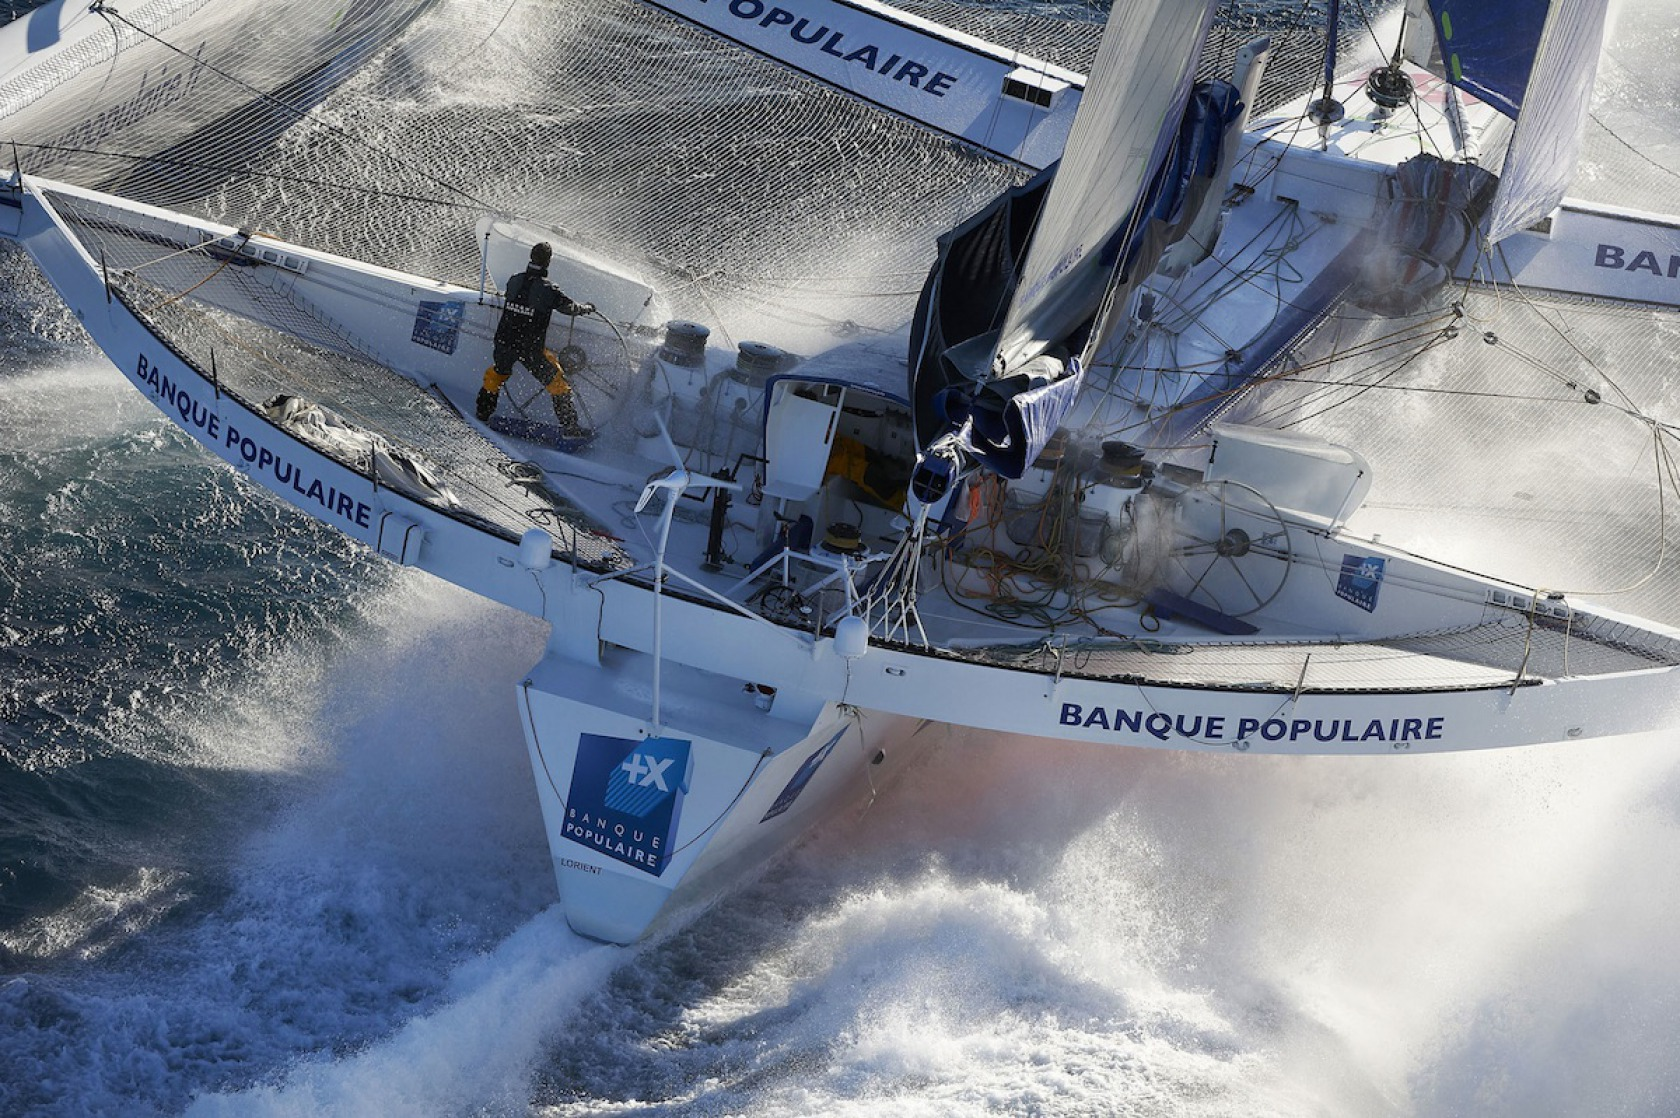 News armel le cl ac 39 h back to multihulls after the vend e globe vend e globe - Armel le cleac h banque populaire ...